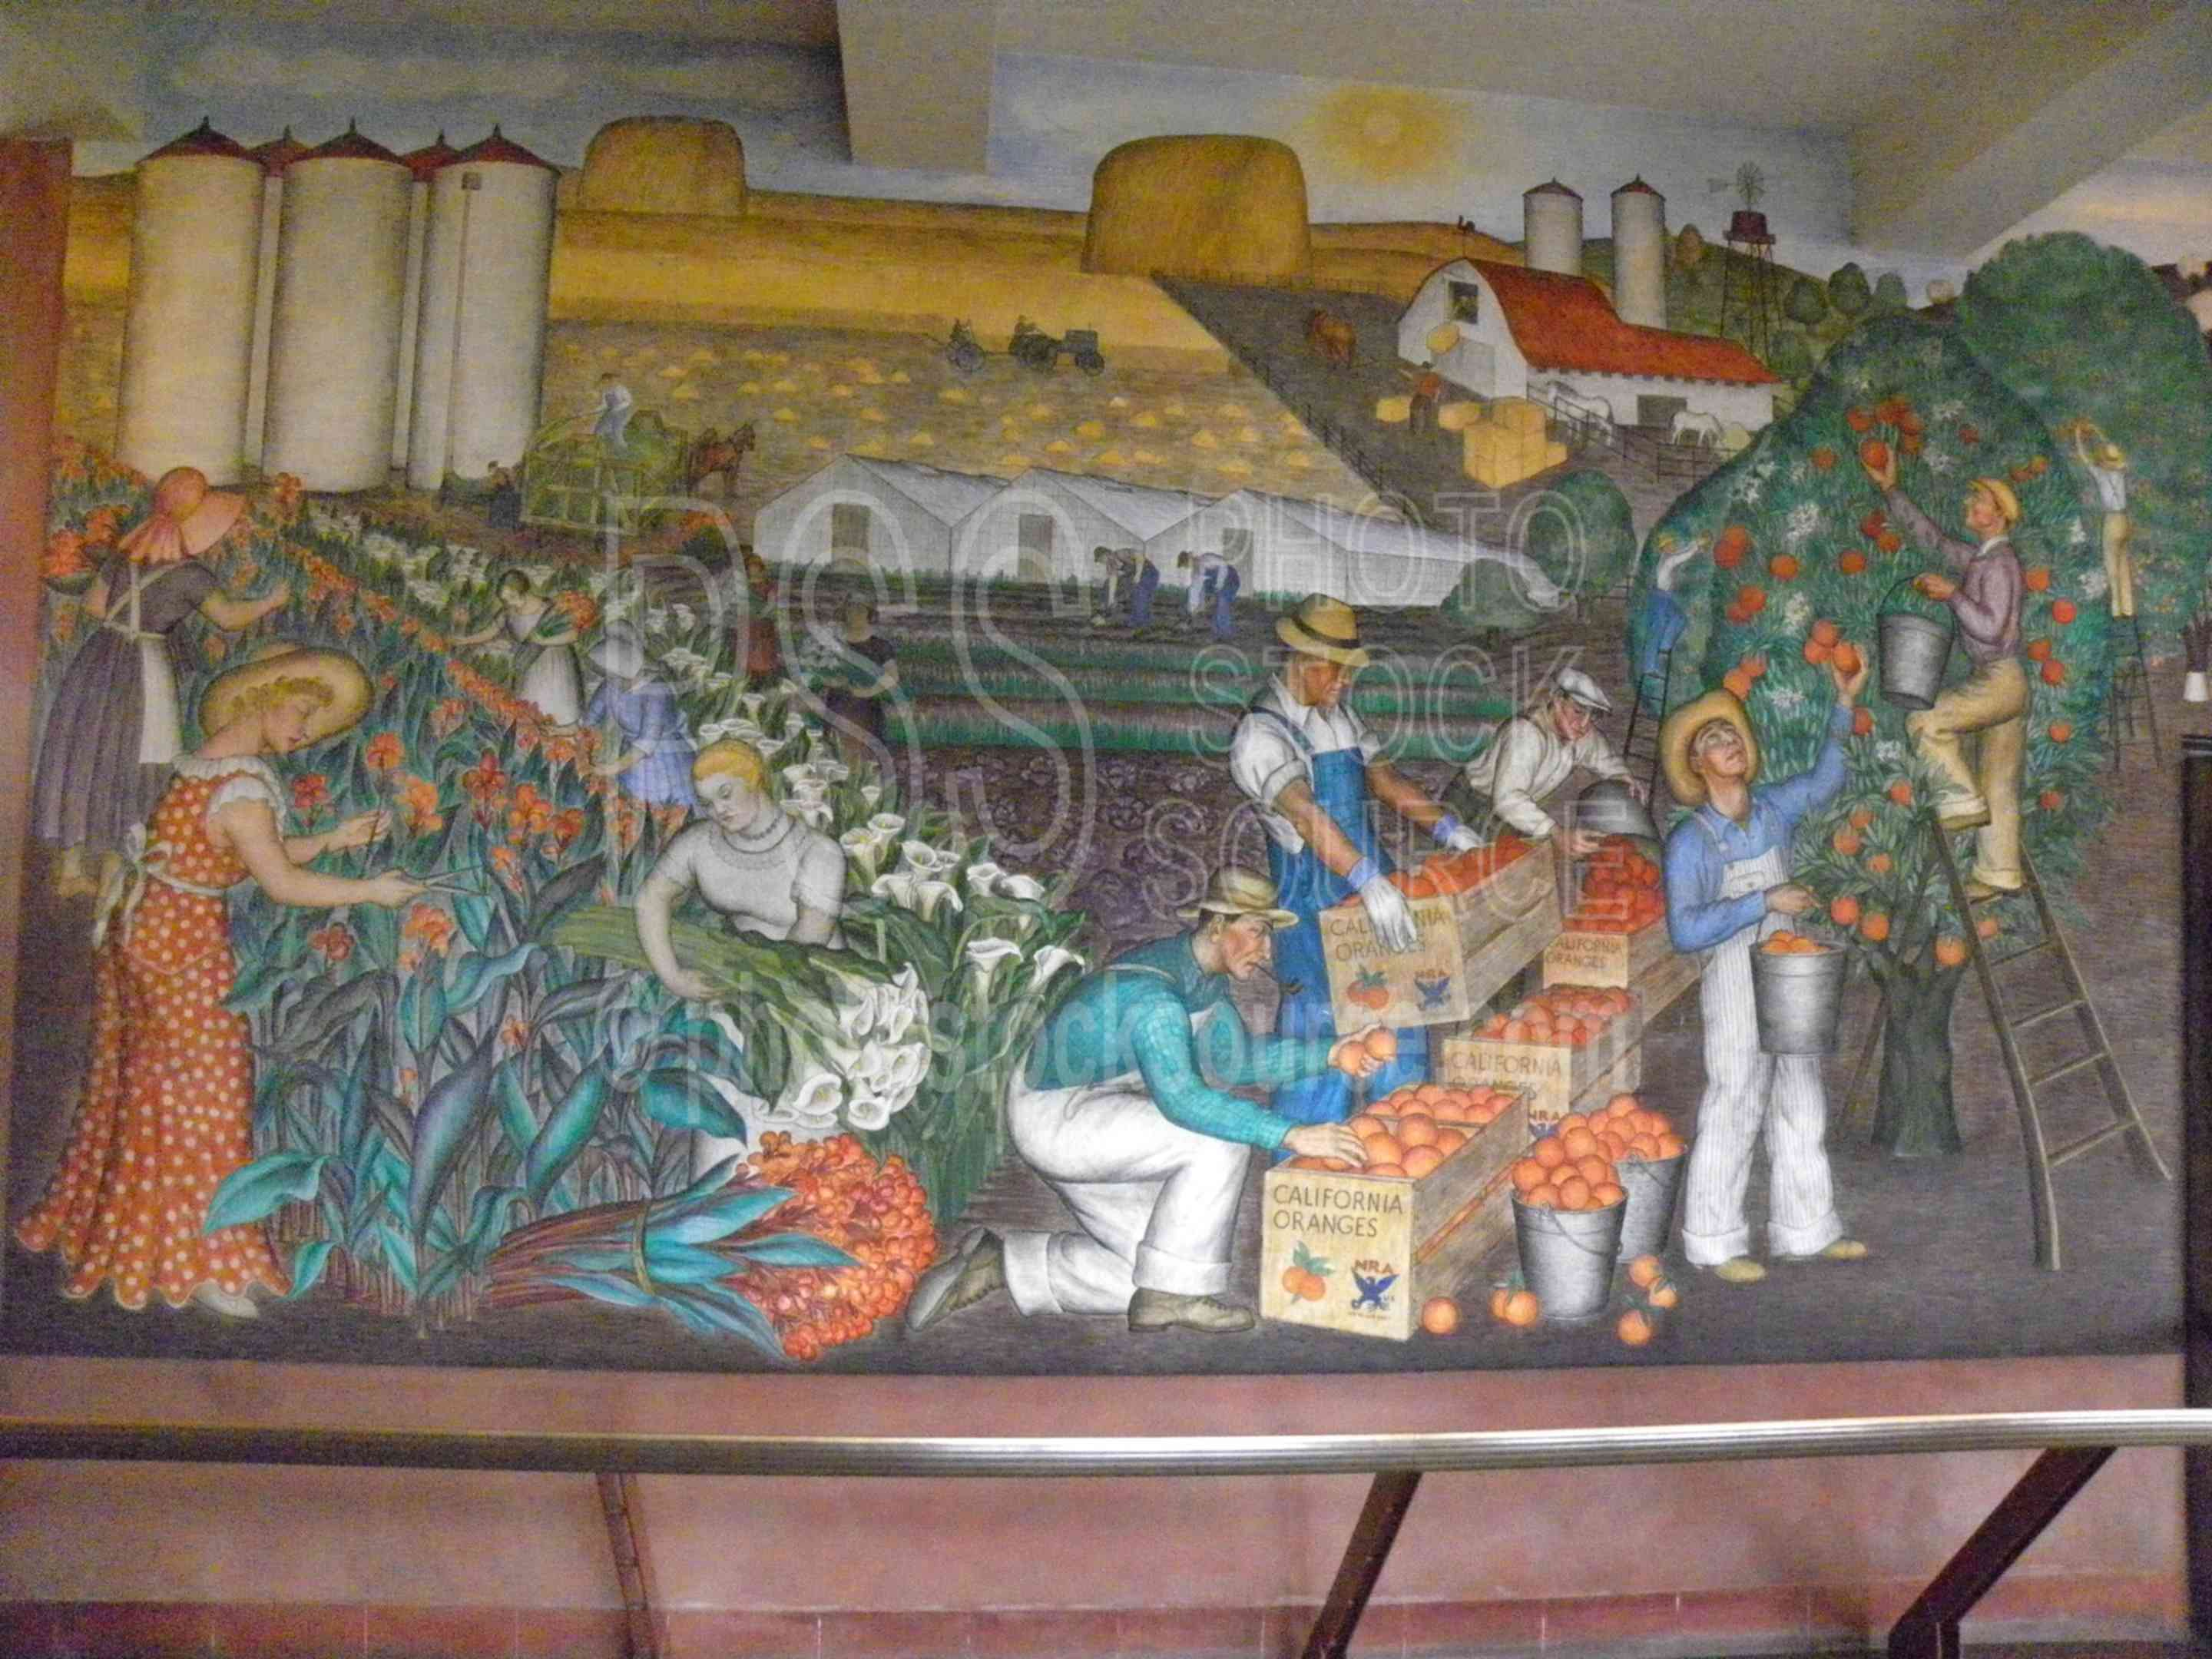 Coit Tower Murals,mural,painting,decoration,historic,frescoes